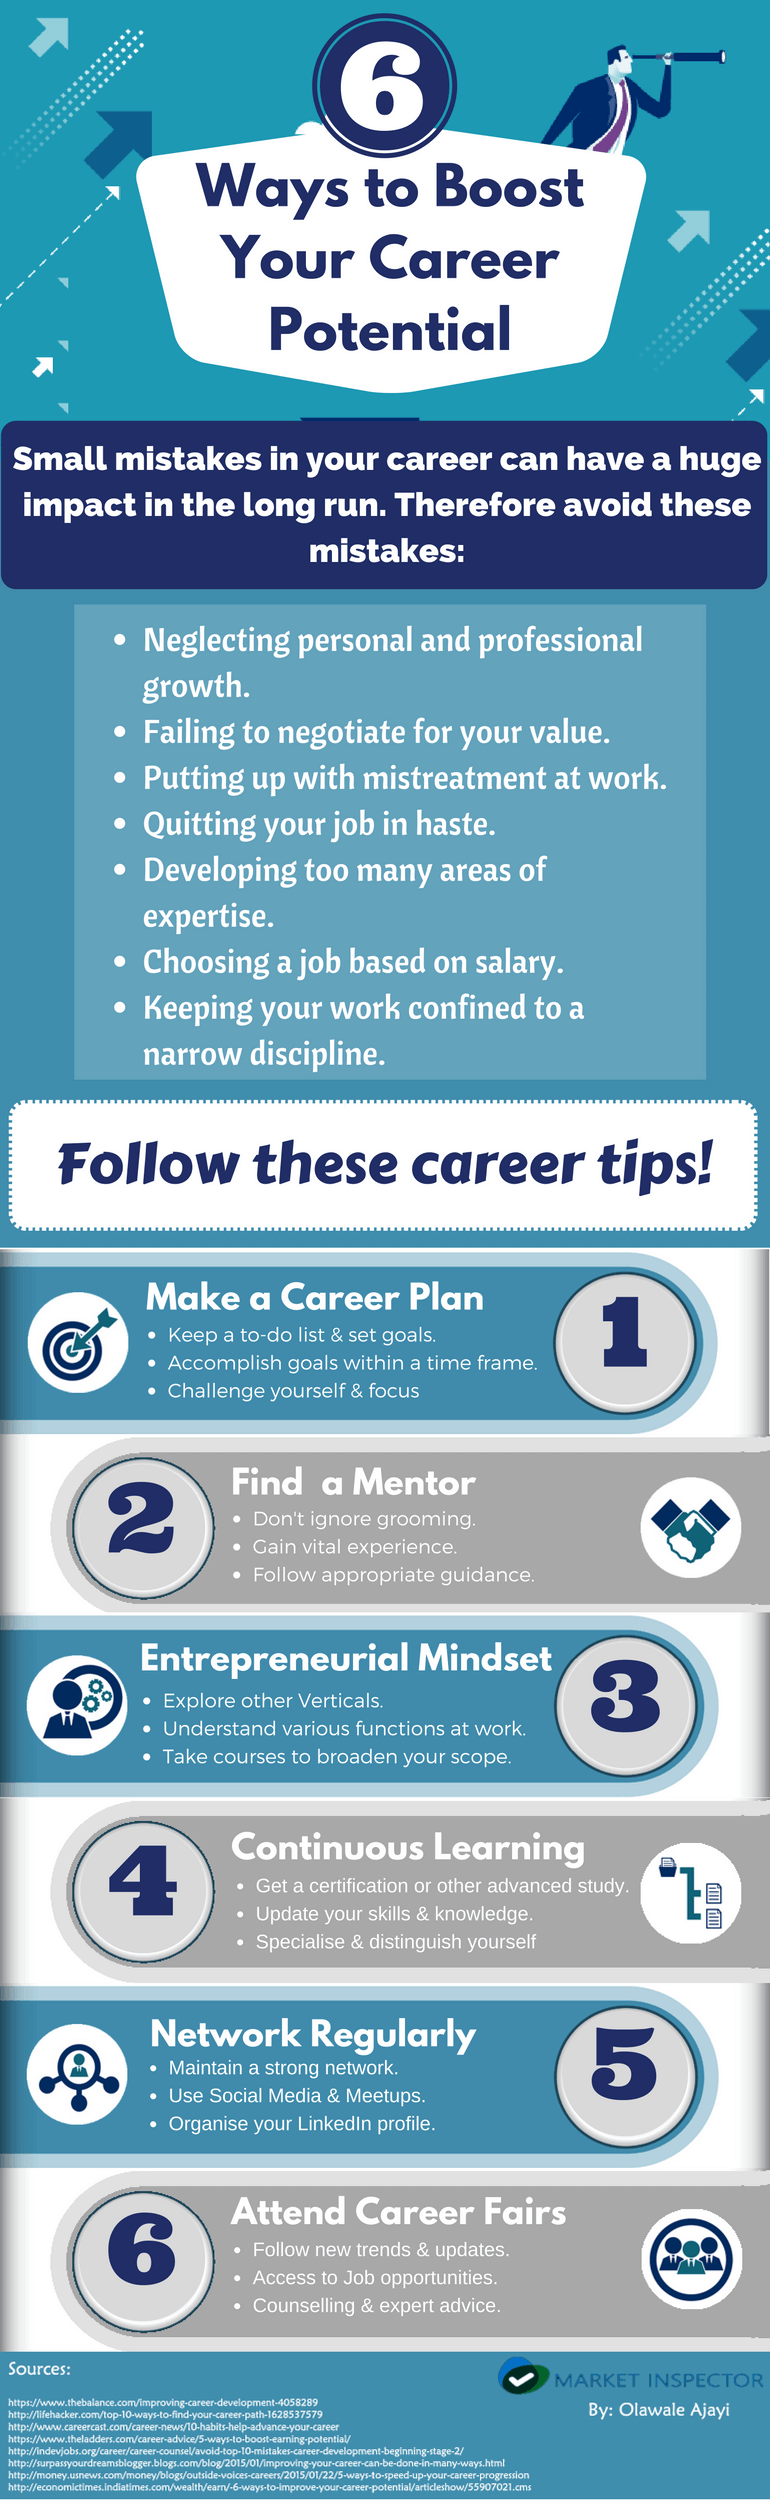 Boost Your Career Potential